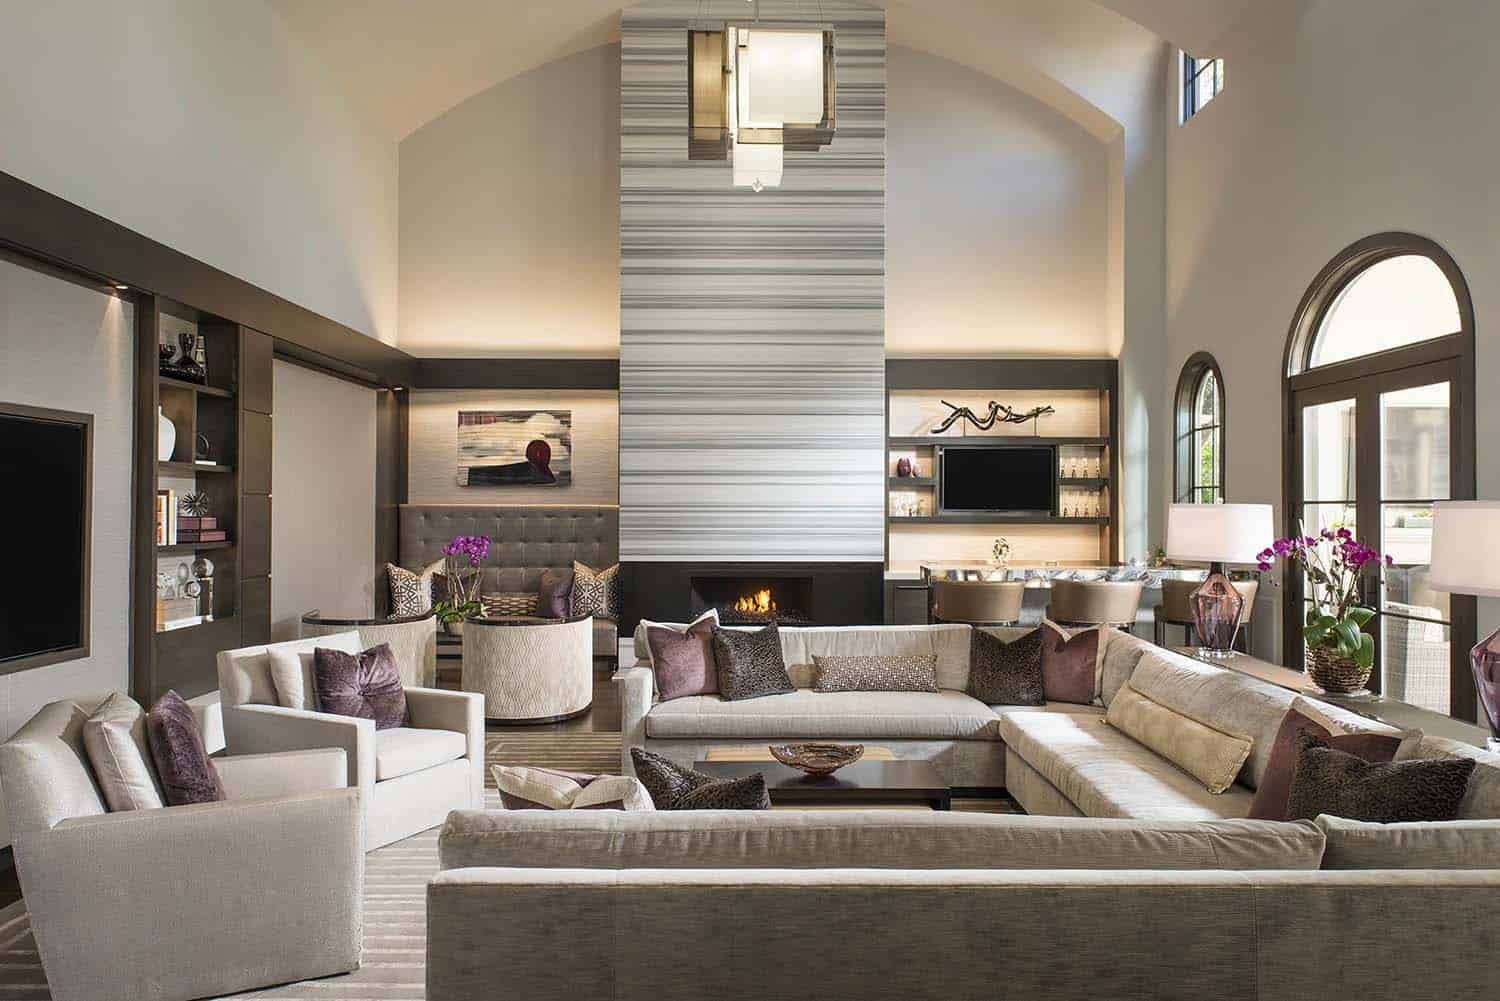 Luxurious modern home with striking entertaining spaces in Texas